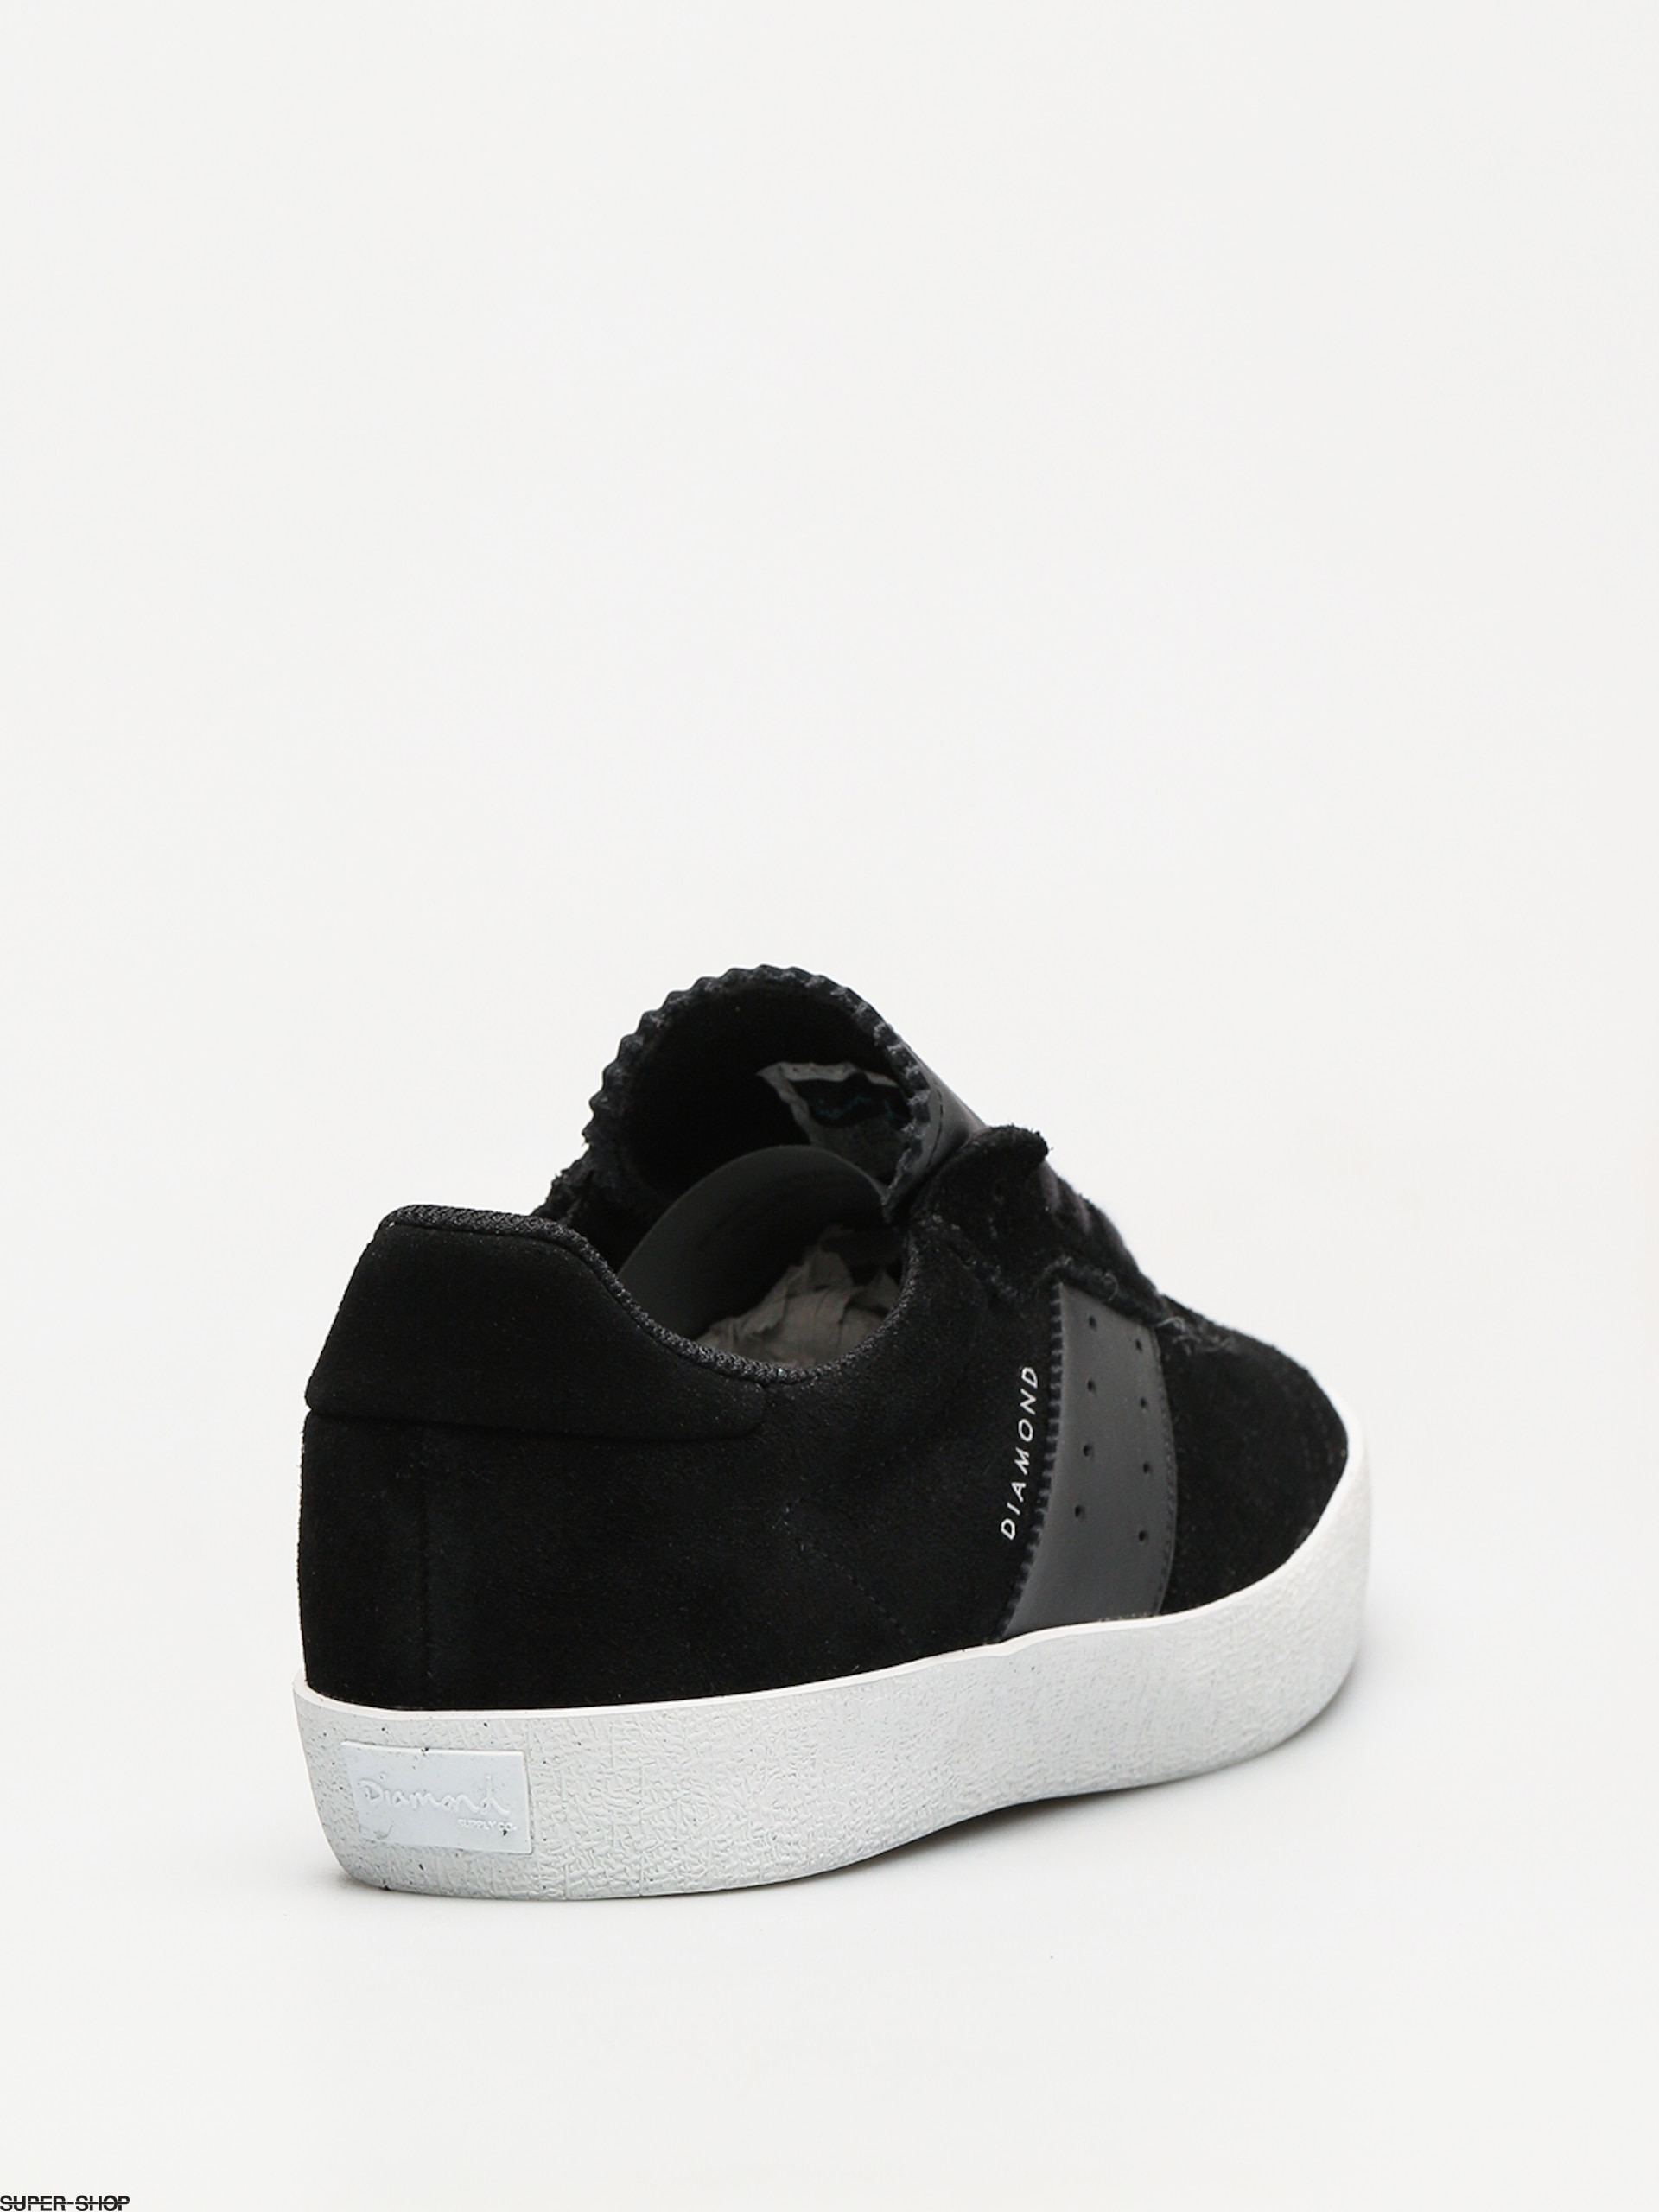 Diamond Supply Co. Shoes Barca Suede (black black) 9130768c169